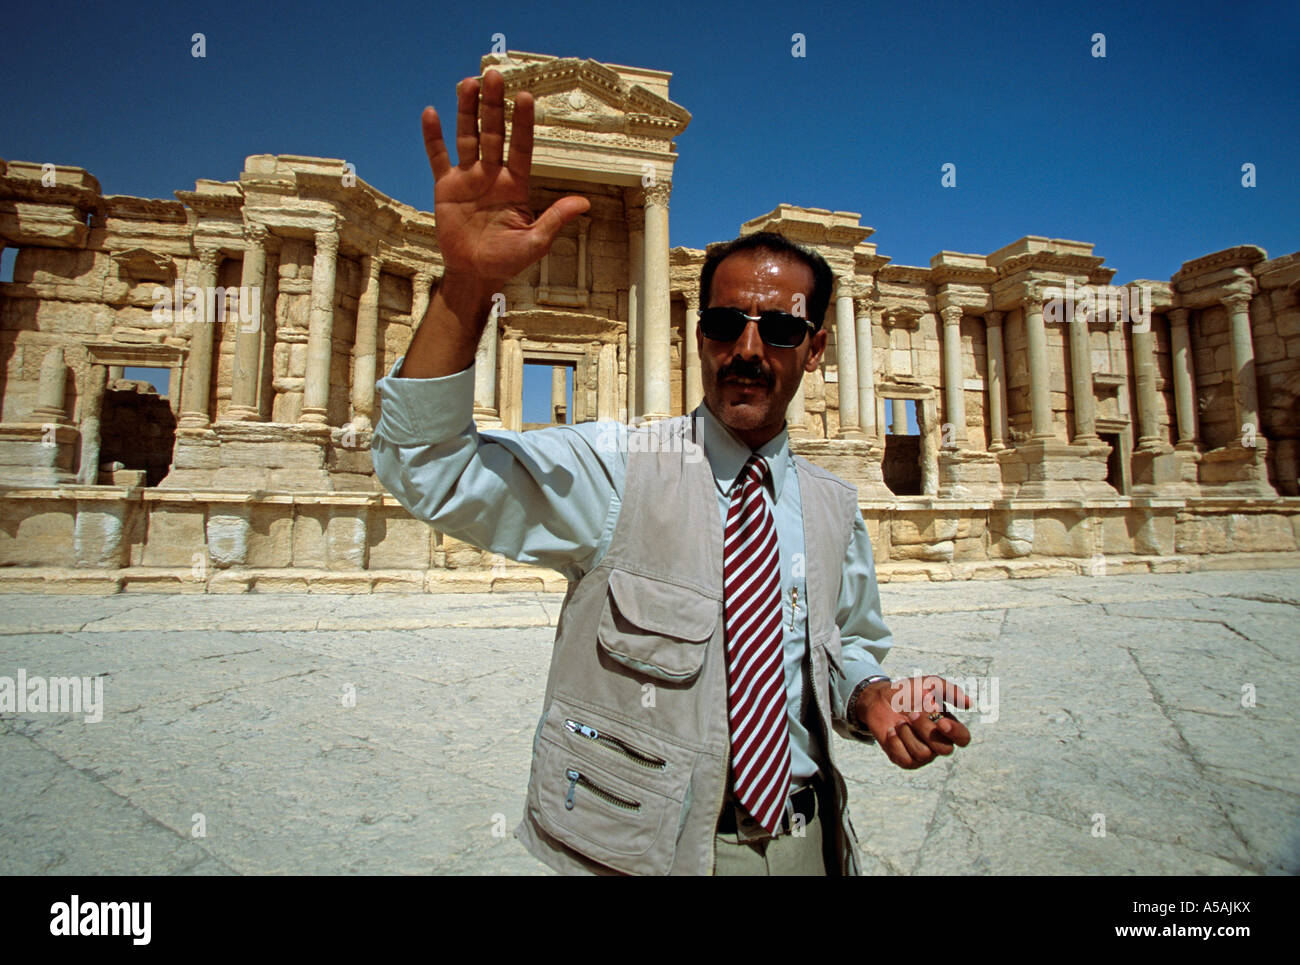 A Tour Guide At The Roman Ruins In Palmyra Syria Stock Photo